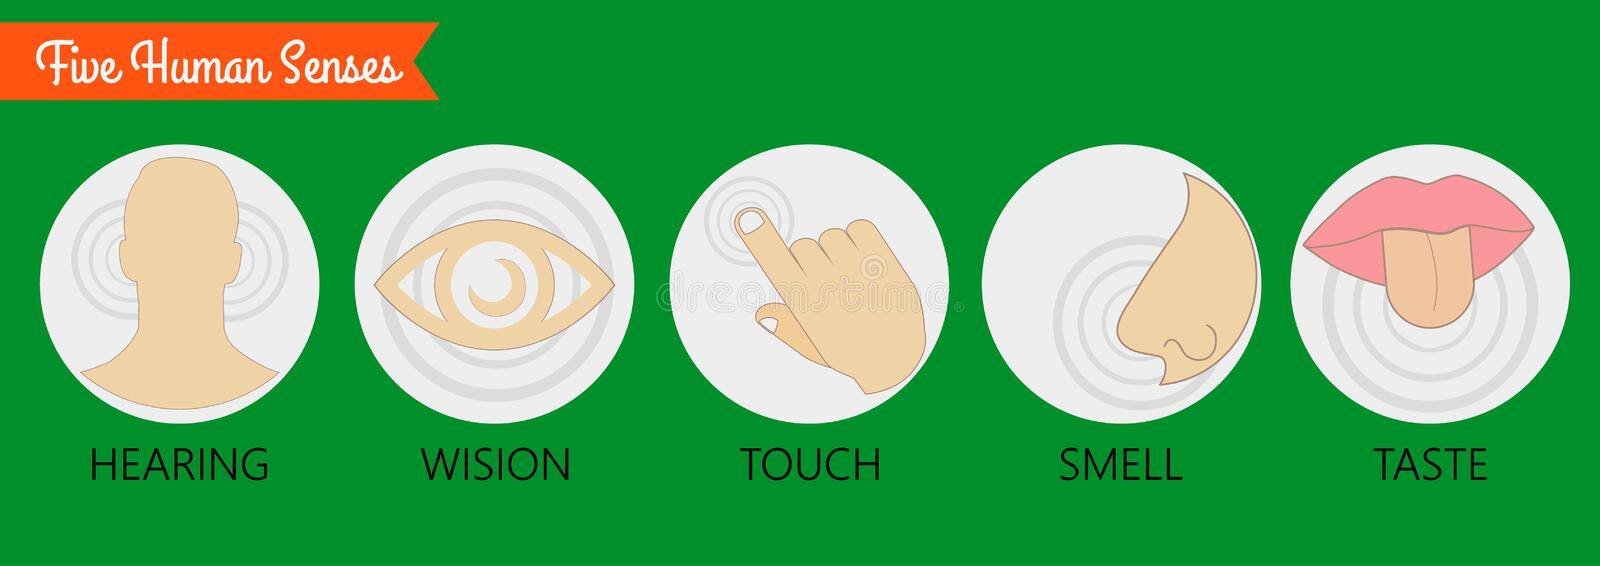 Set of five human senses: vision (eye), smell (nose), hearing (ear), touch (hand), taste (mouth with tongue) . Vector illustration royalty free illustration